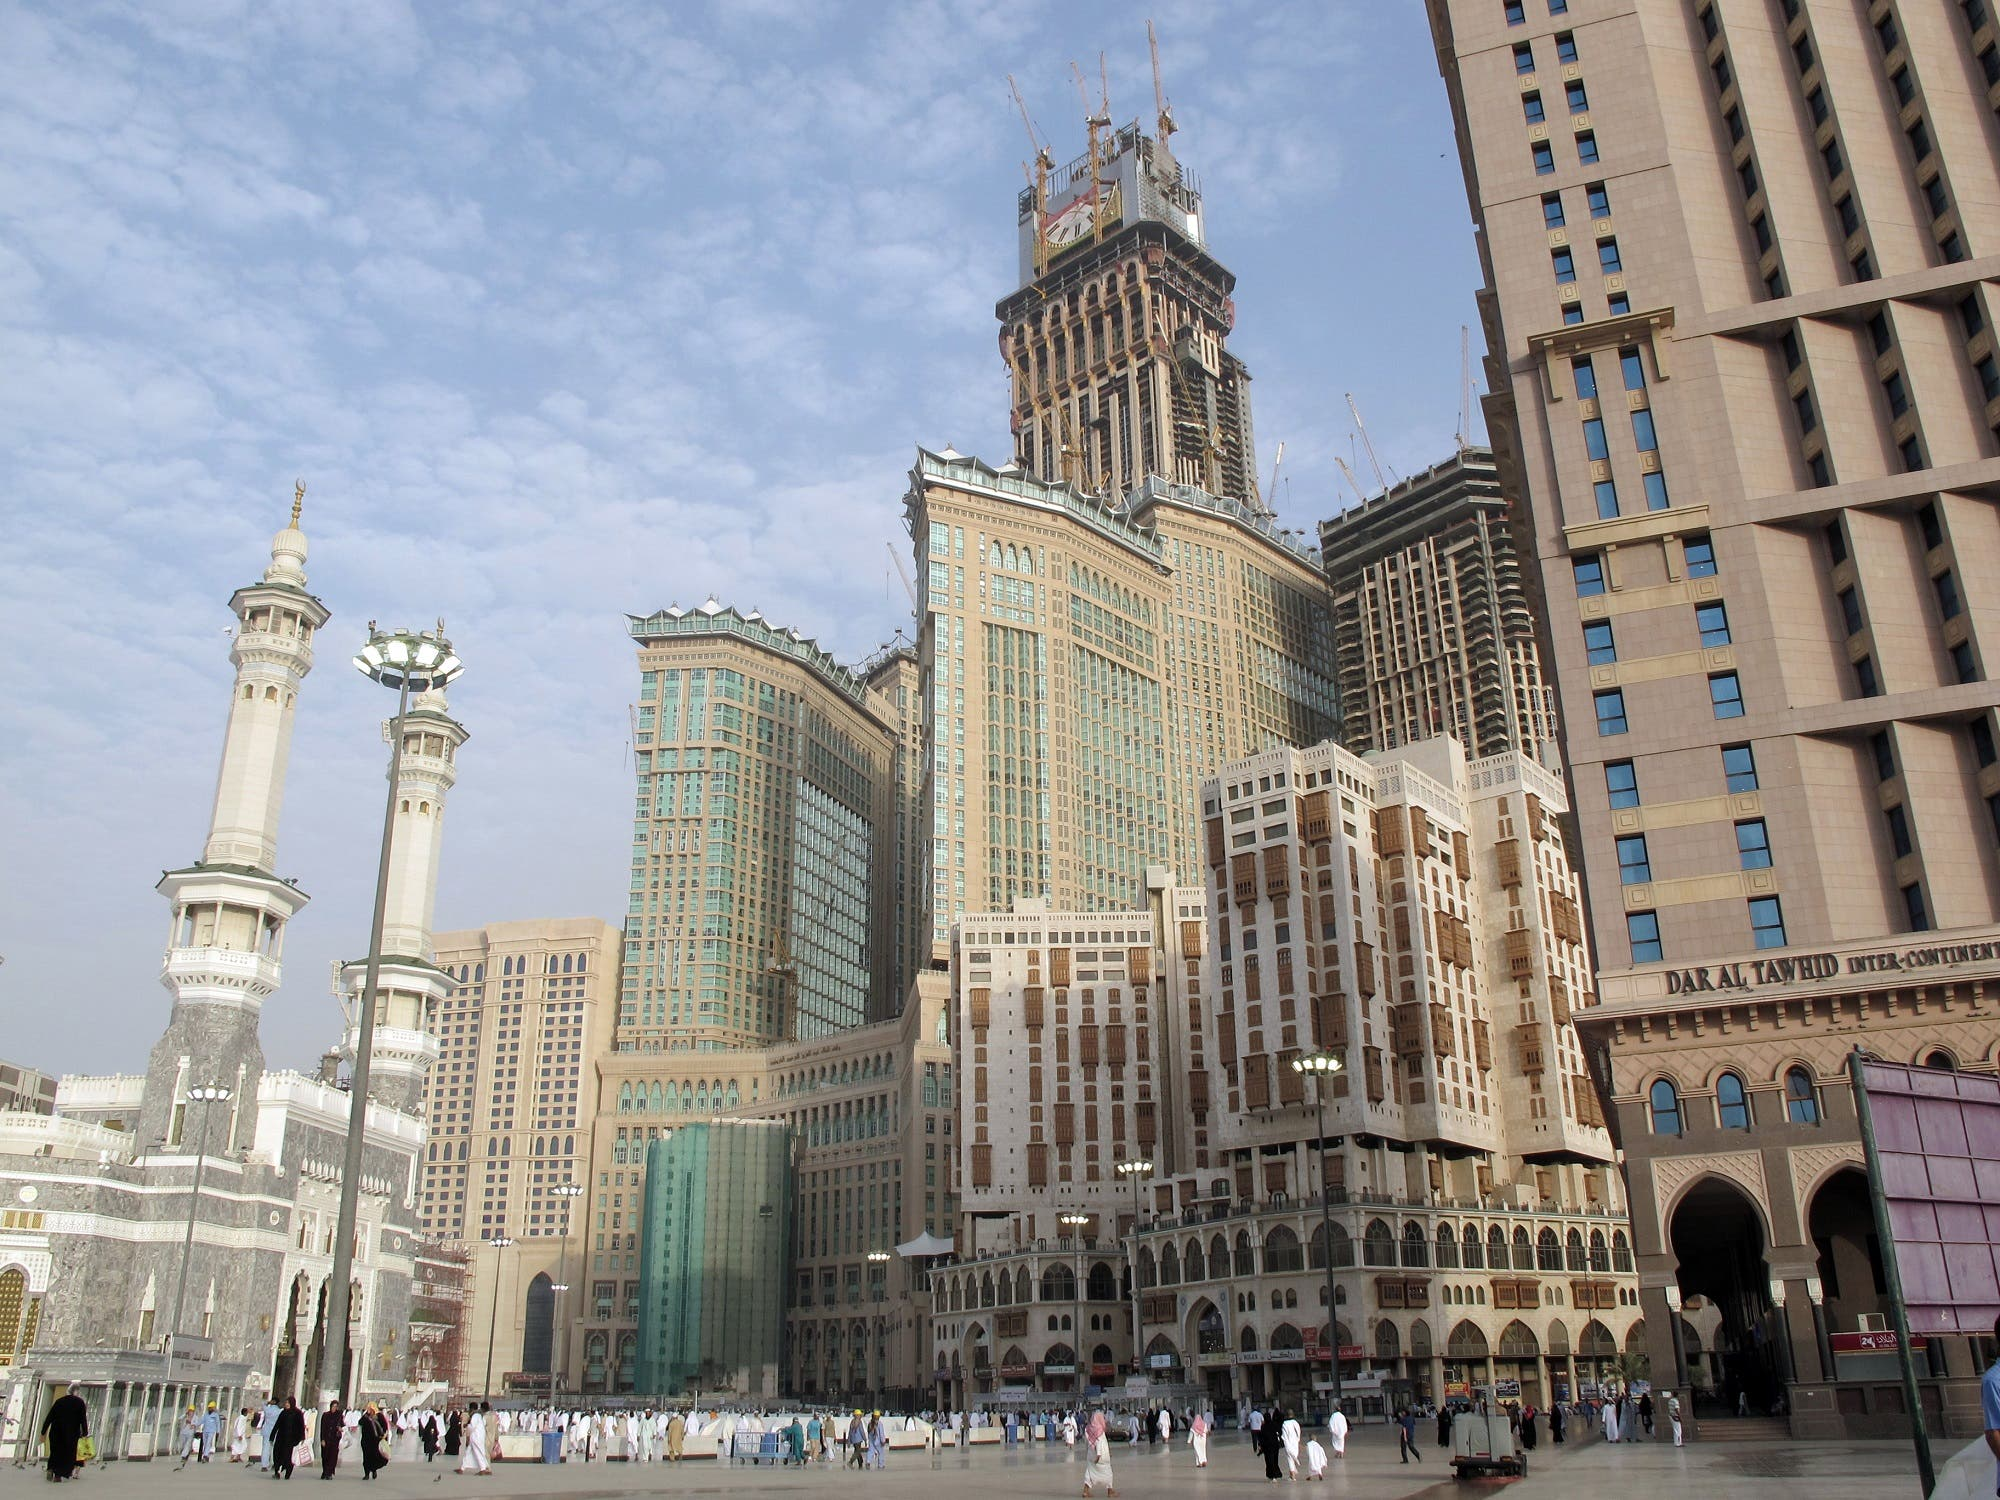 The Mecca Clock Royal Tower hotel is seen under construction, topped by the biggest clock in the world with a 45 meters diameter, which overlooks the Grand Mosque on June 16, 2010, in Mecca. (AFP)